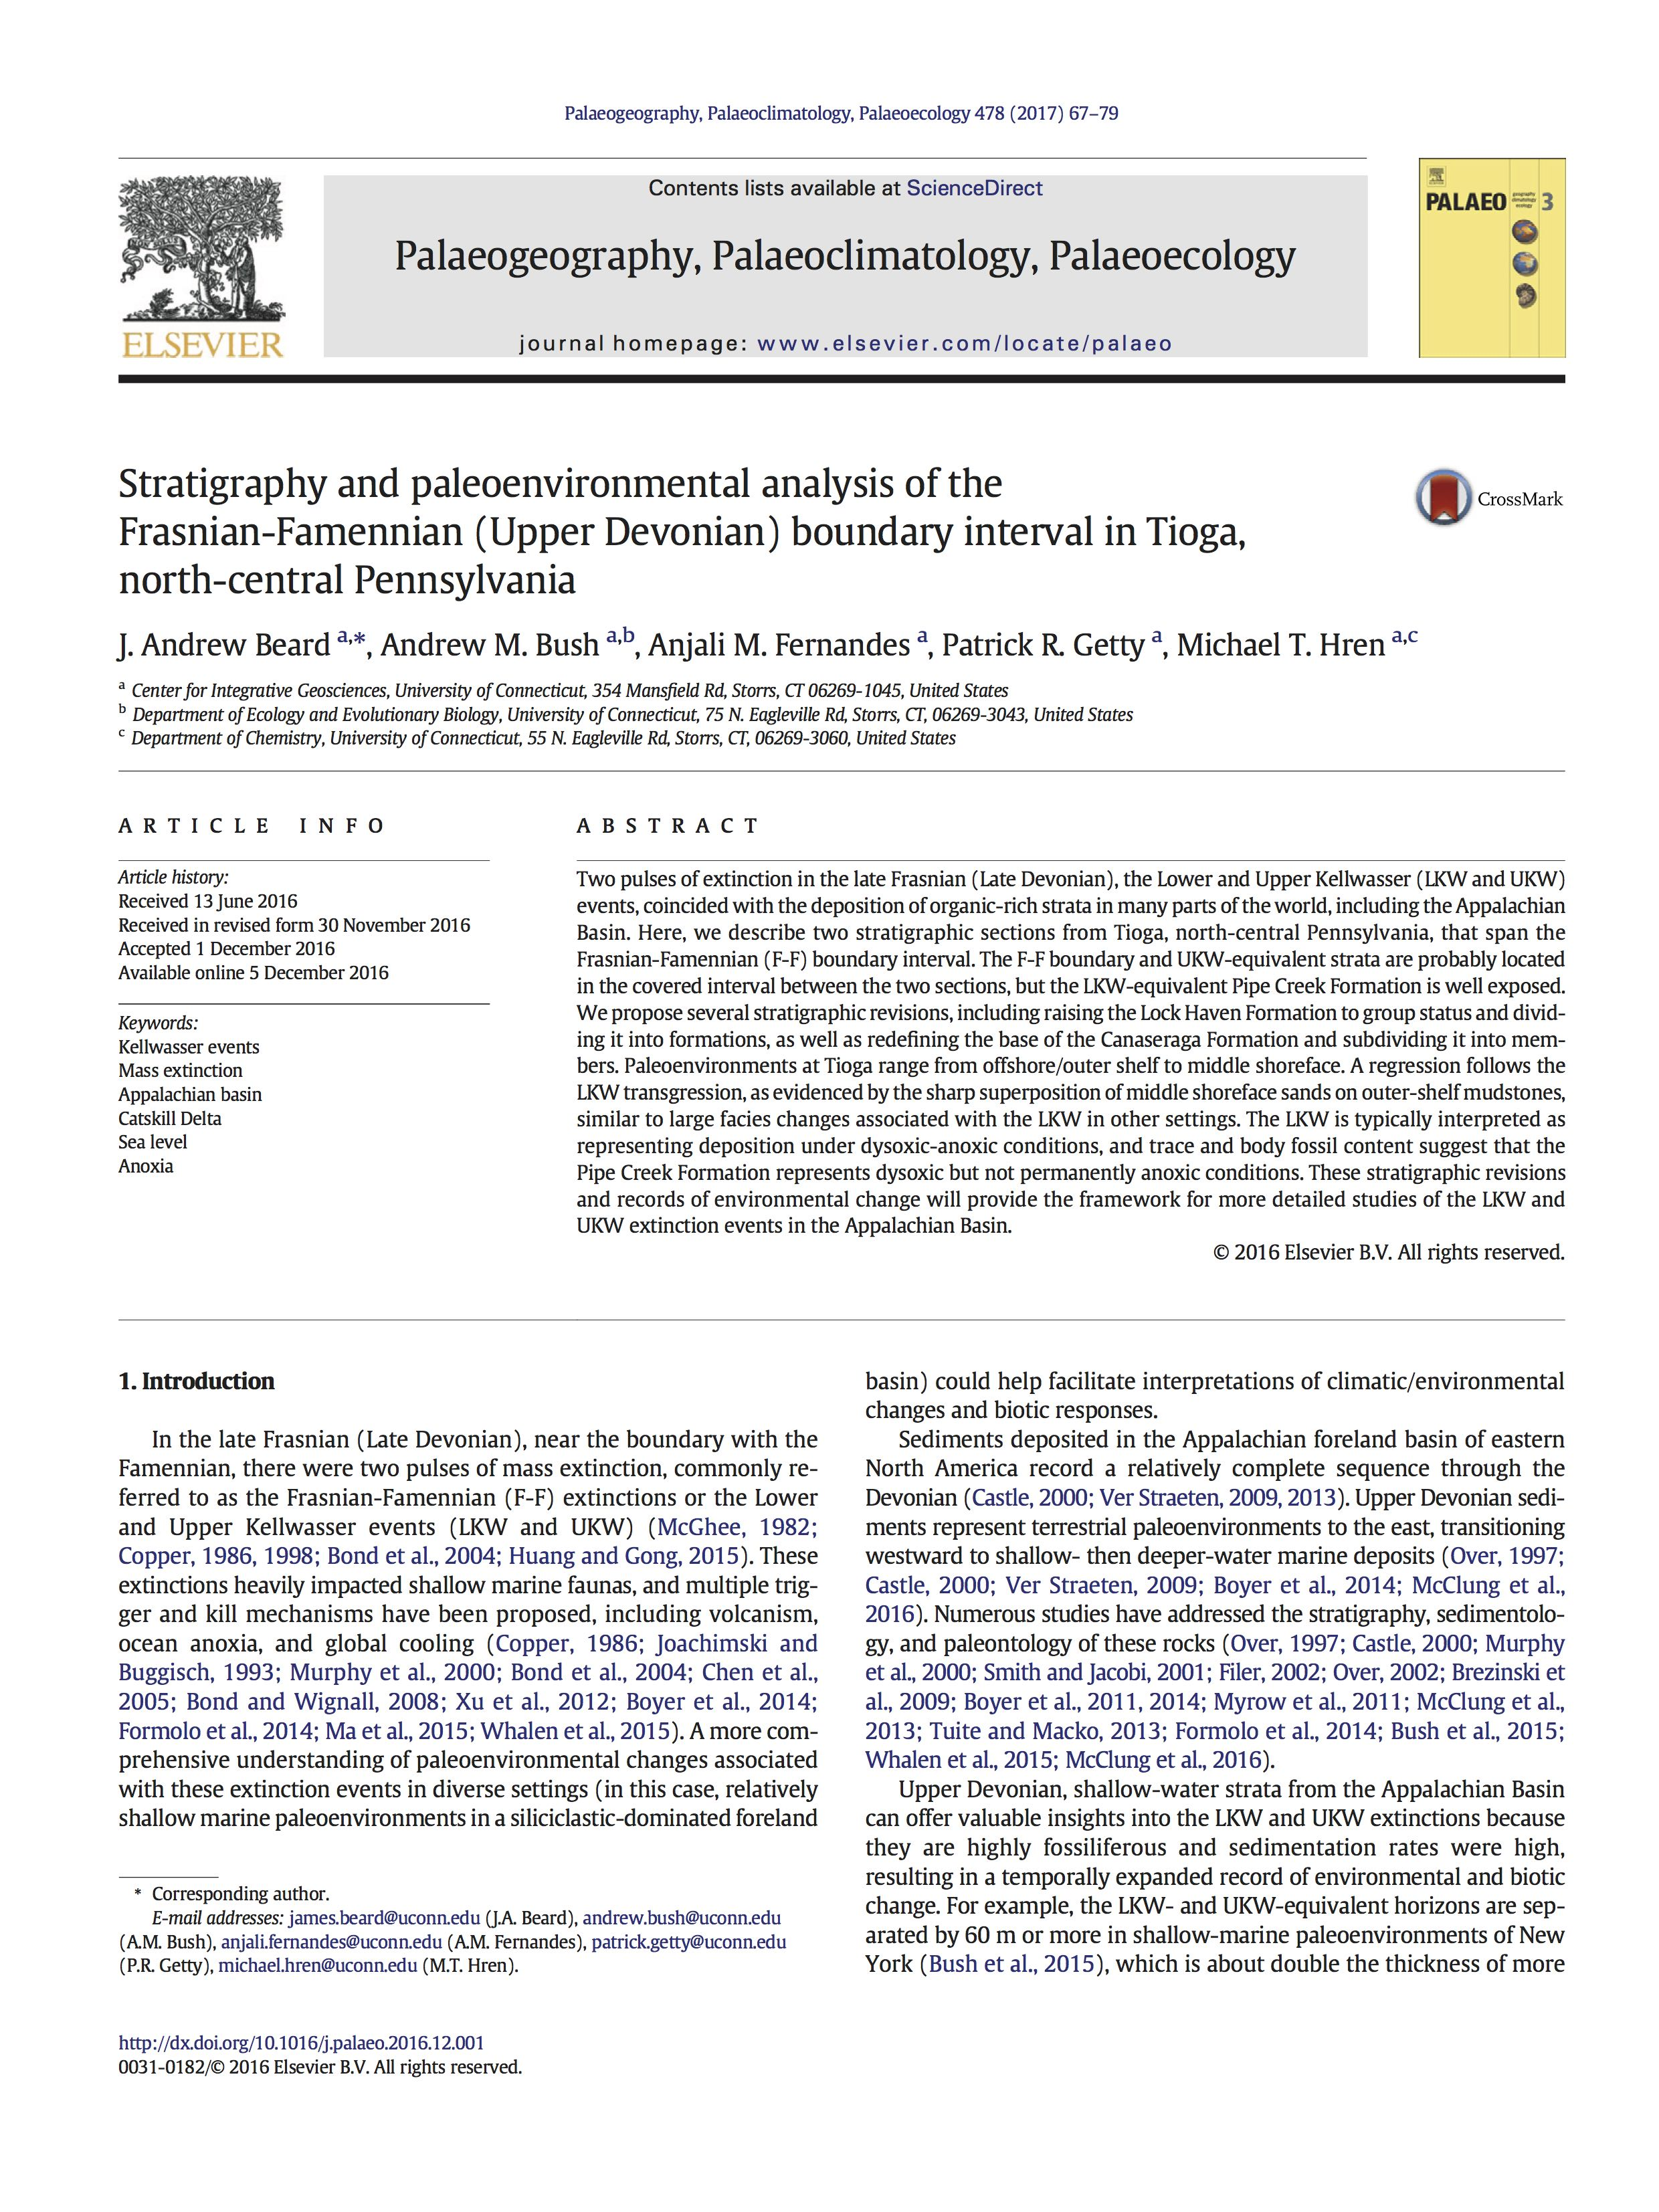 For full text, use the following URL:https://www.researchgate.net/publication/309285190_Stratigraphy_and_paleoenvironmental_analysis_of_the_Frasnian-Famennian_Upper_Devonian_boundary_interval_in_Tioga_north-central_Pennsylvania